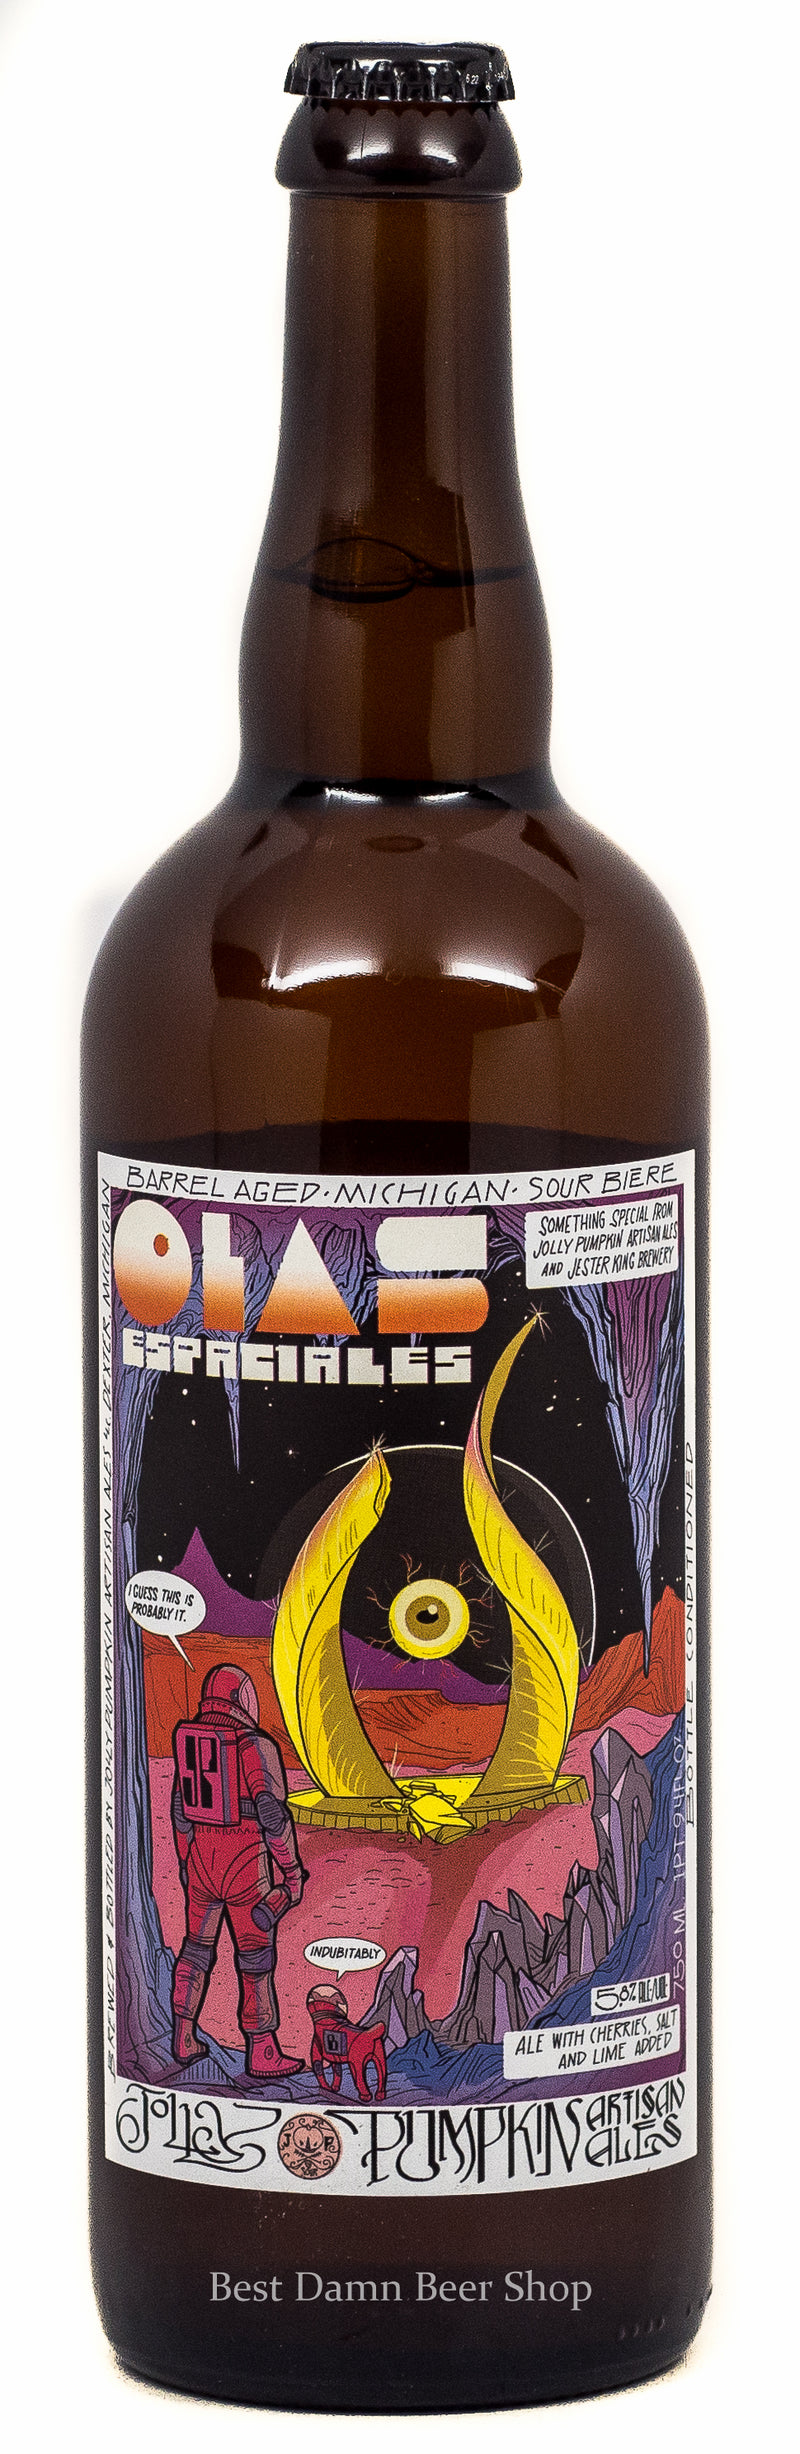 Jolly Pumpkin Brewery Jester King Brewery Olas Espaciales 750ml